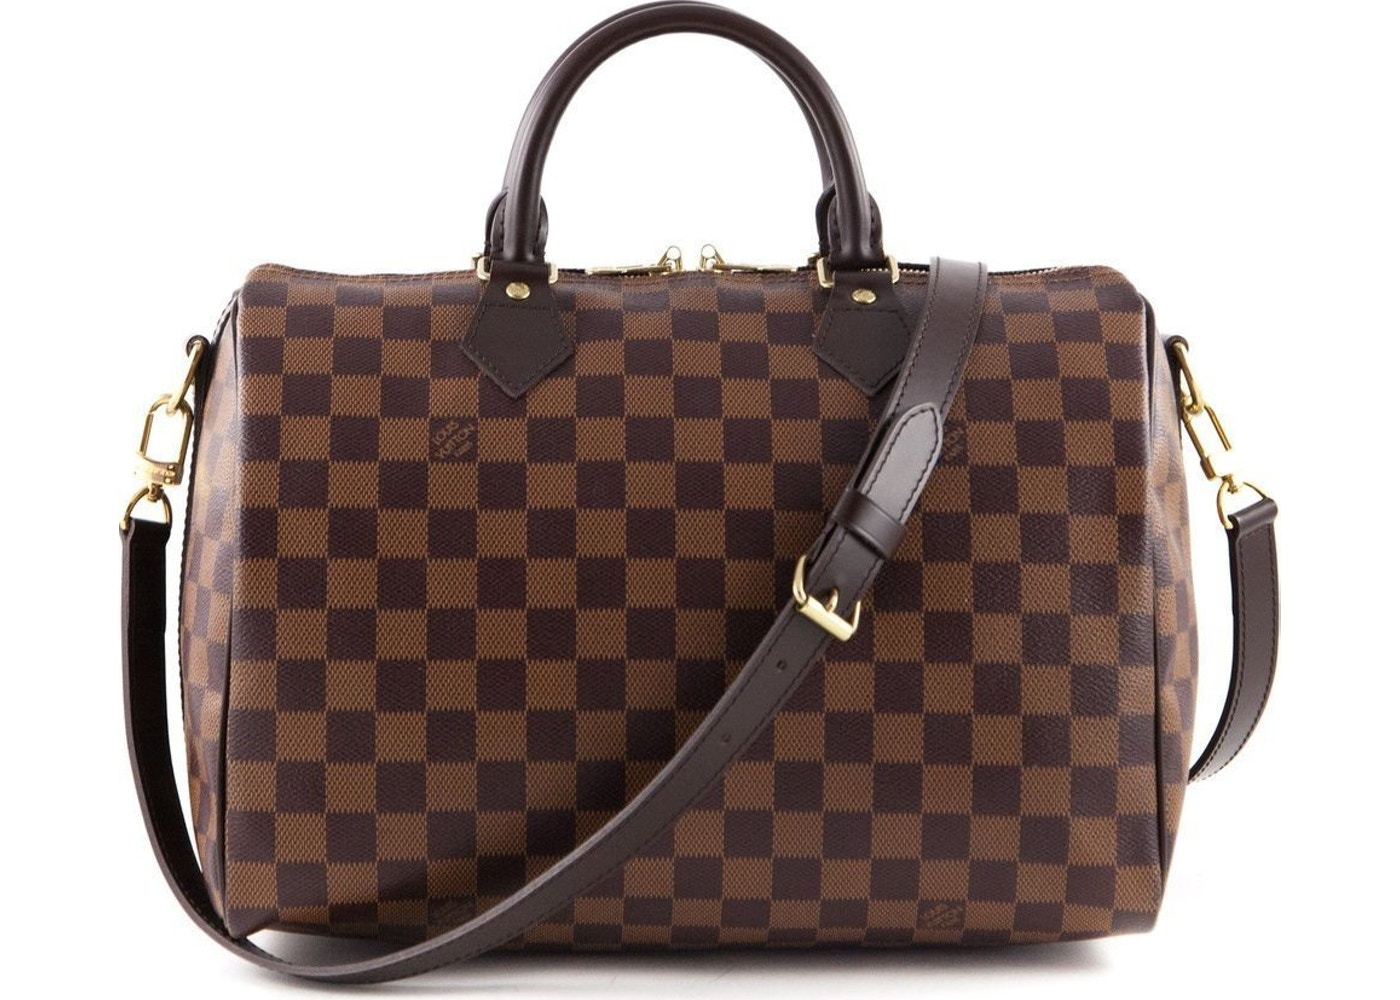 d6f8b8be364f Louis Vuitton Speedy Bandouliere Damier Ebene 30 Brown. Damier Ebene 30  Brown